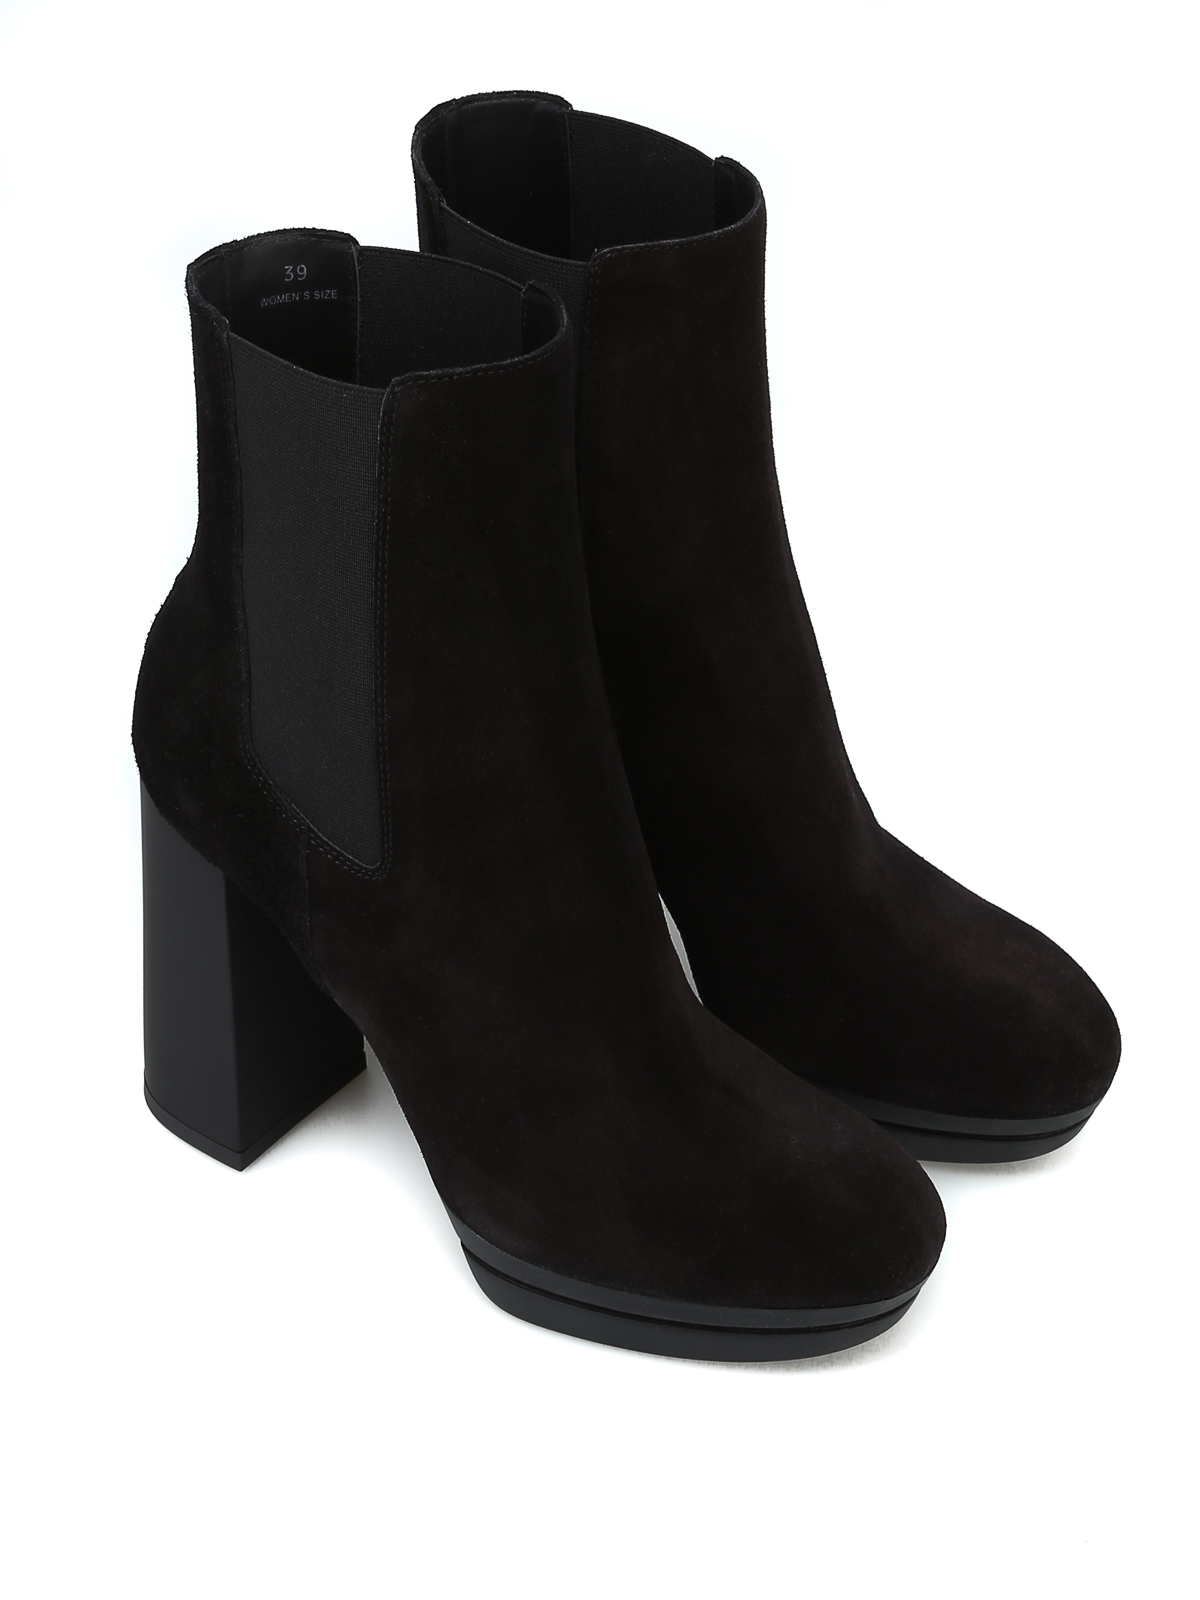 cc10da4041e Hogan - H391 black suede ankle boots - ankle boots - HXW3910AS00BYEB999